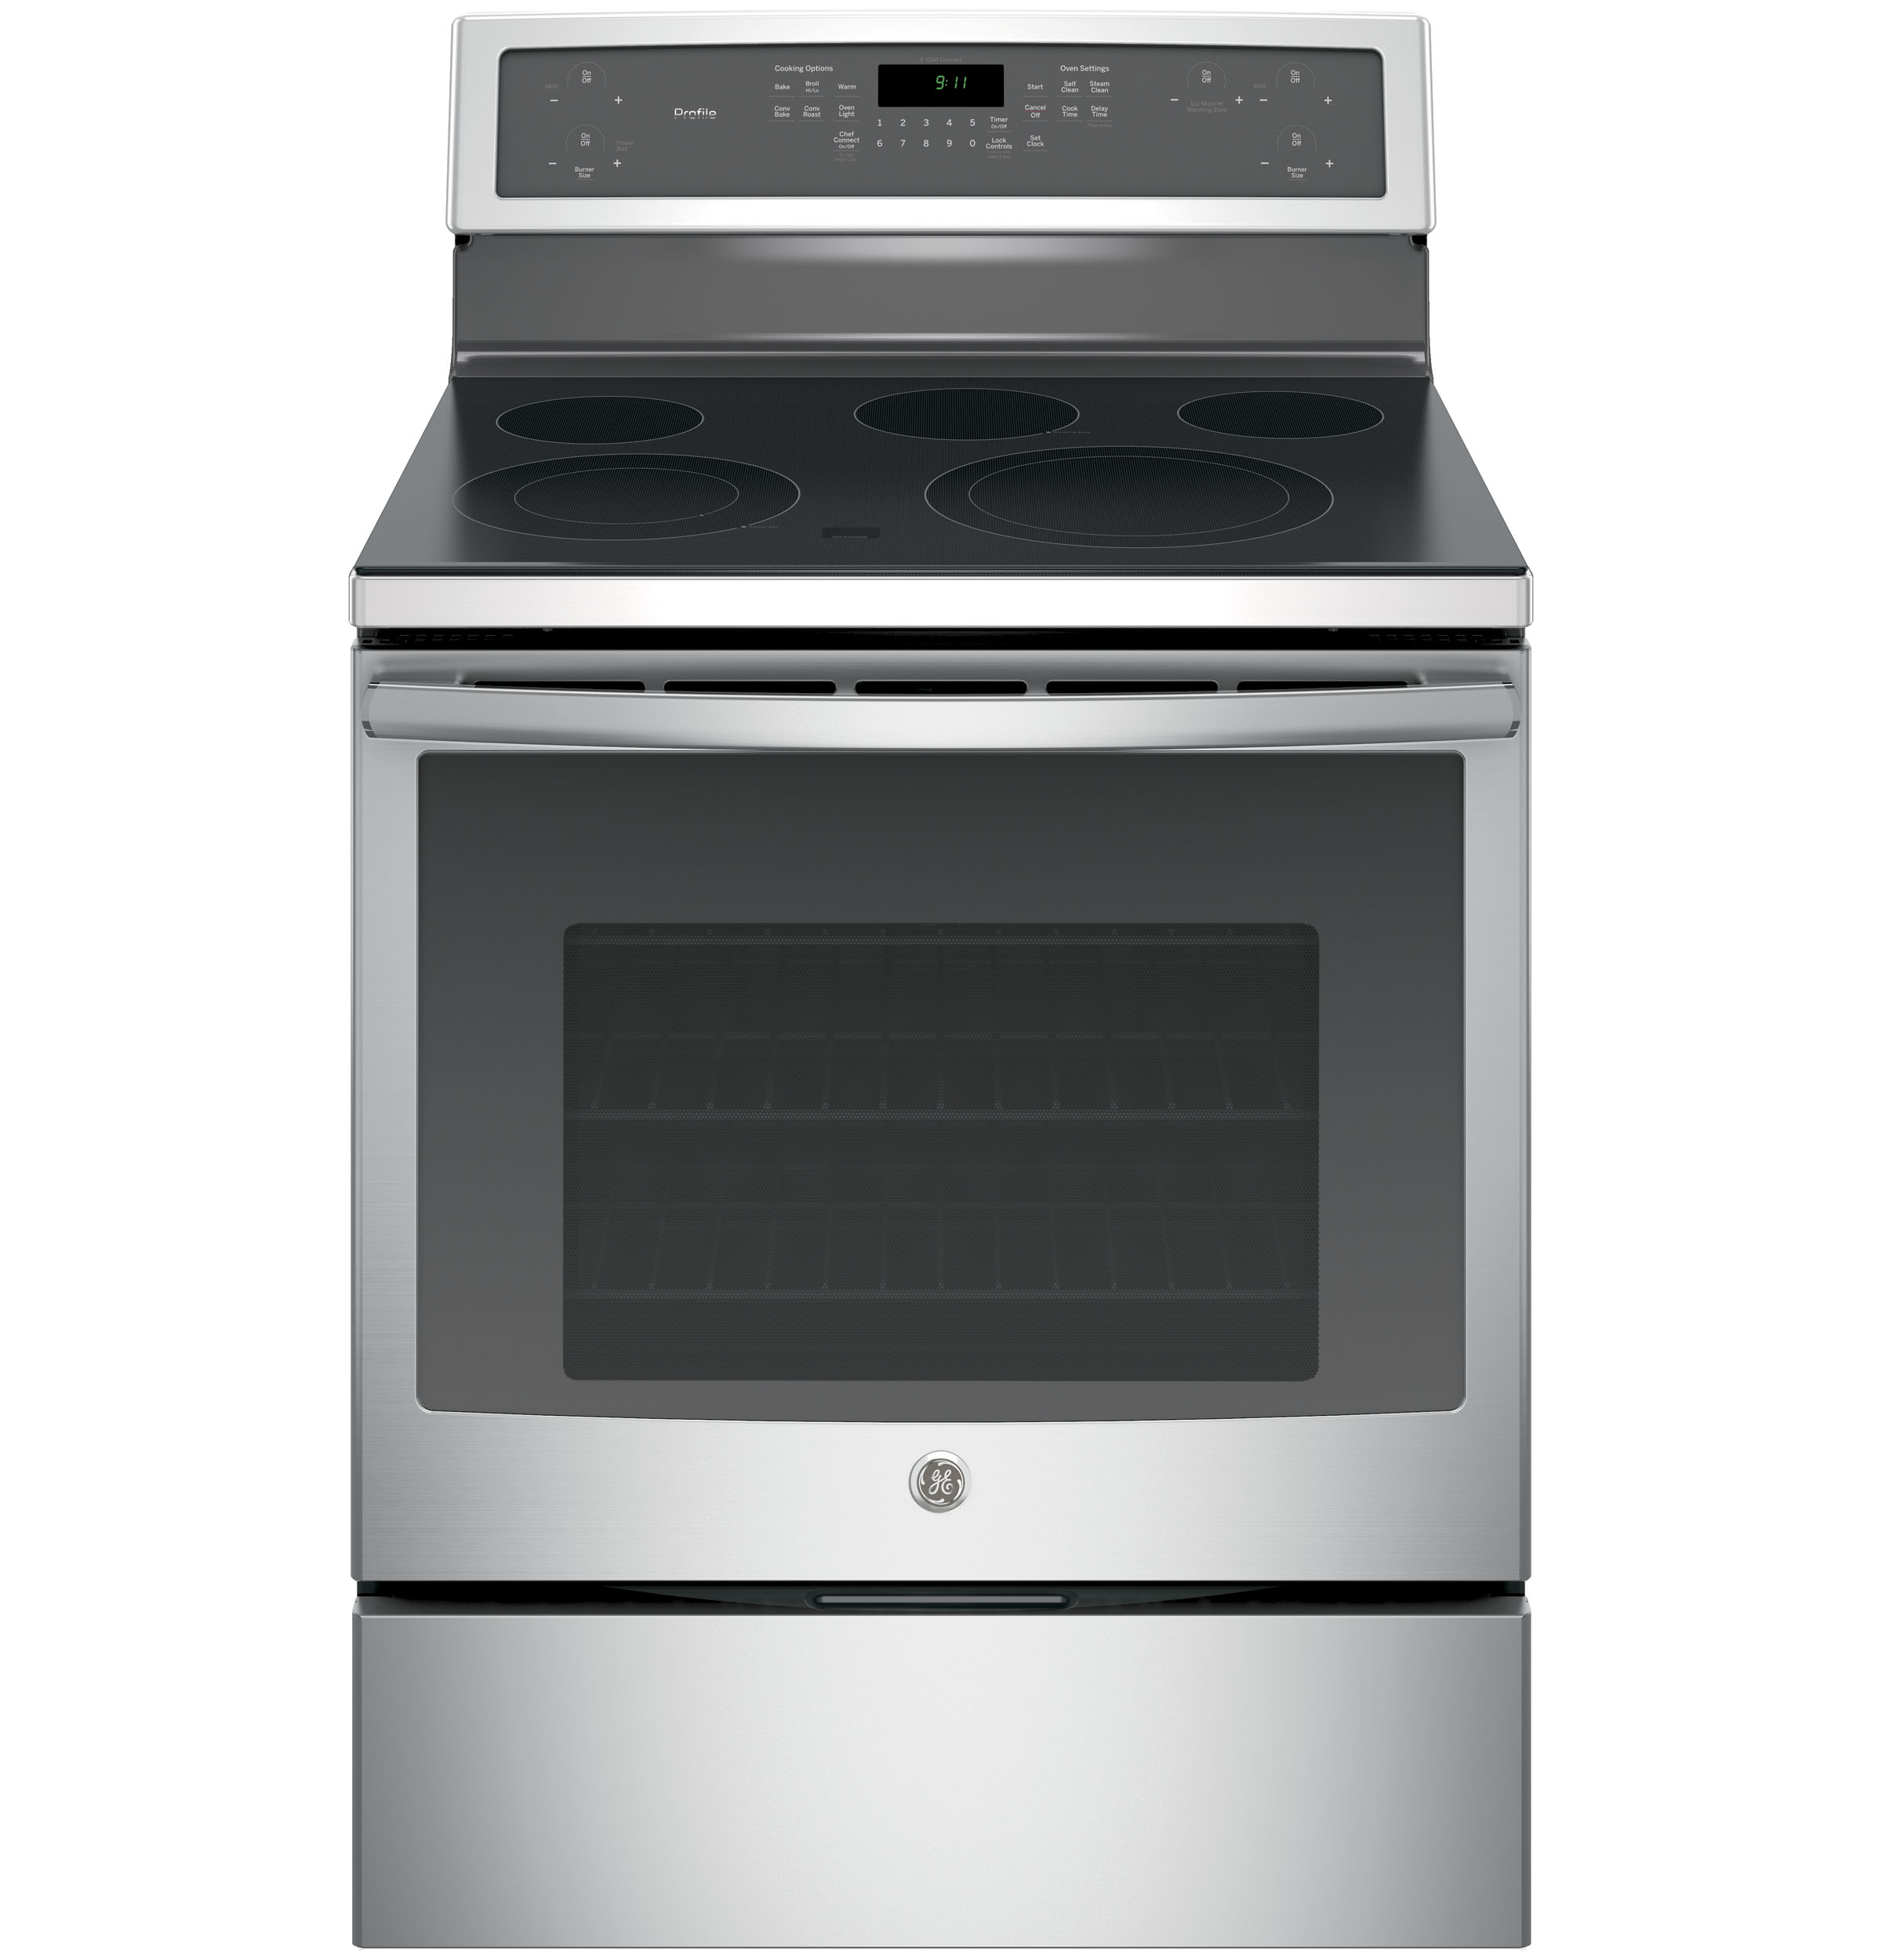 "Model: PB911SJSS | GE Profile GE Profile™ Series 30"" Free-Standing Electric Convection Range"